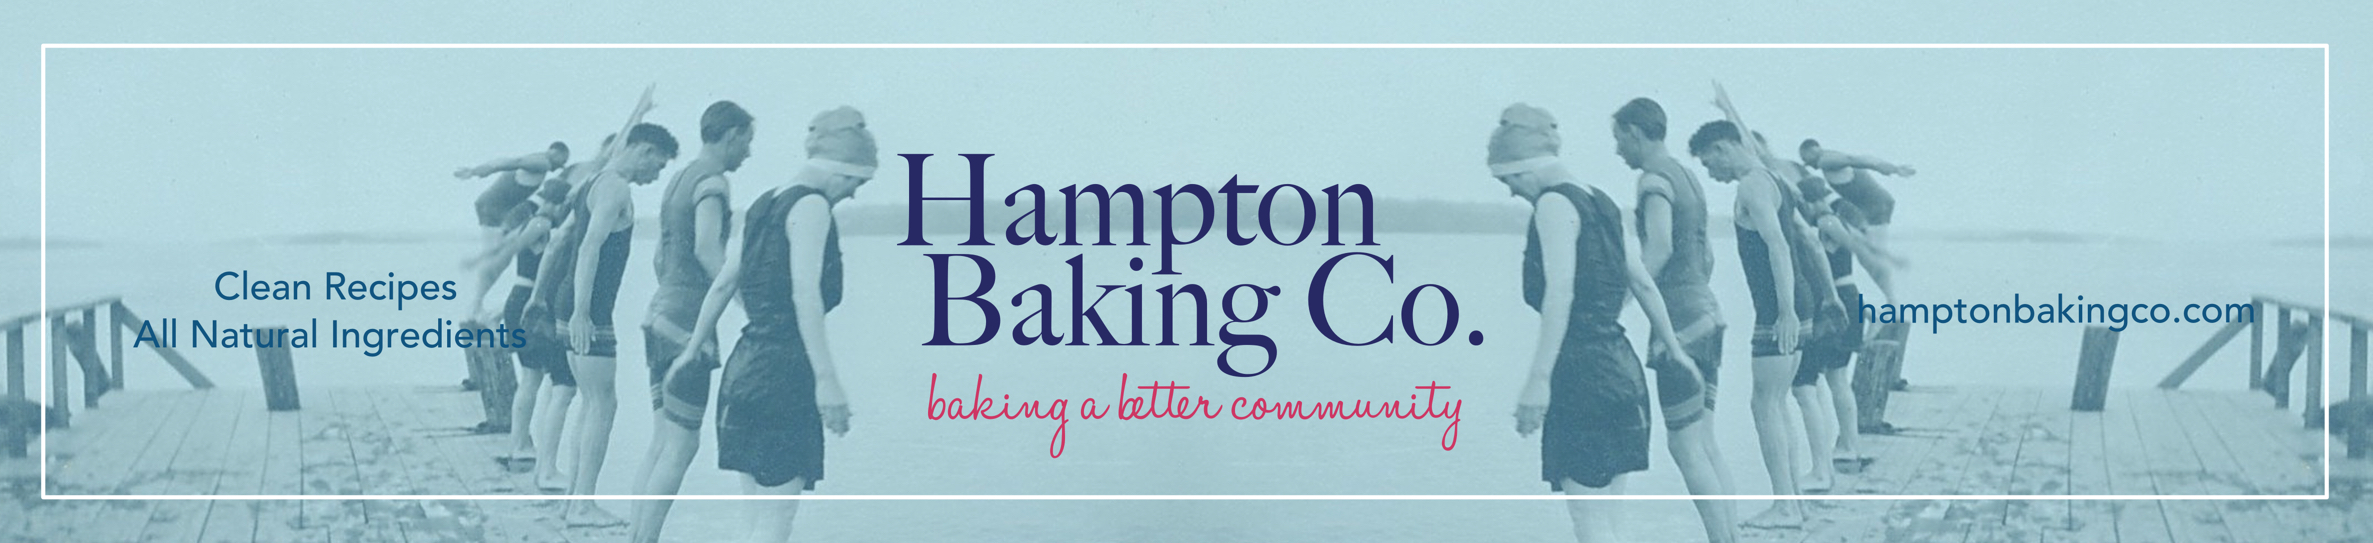 Hampton Baking Co. classic all natural cookies.jpg